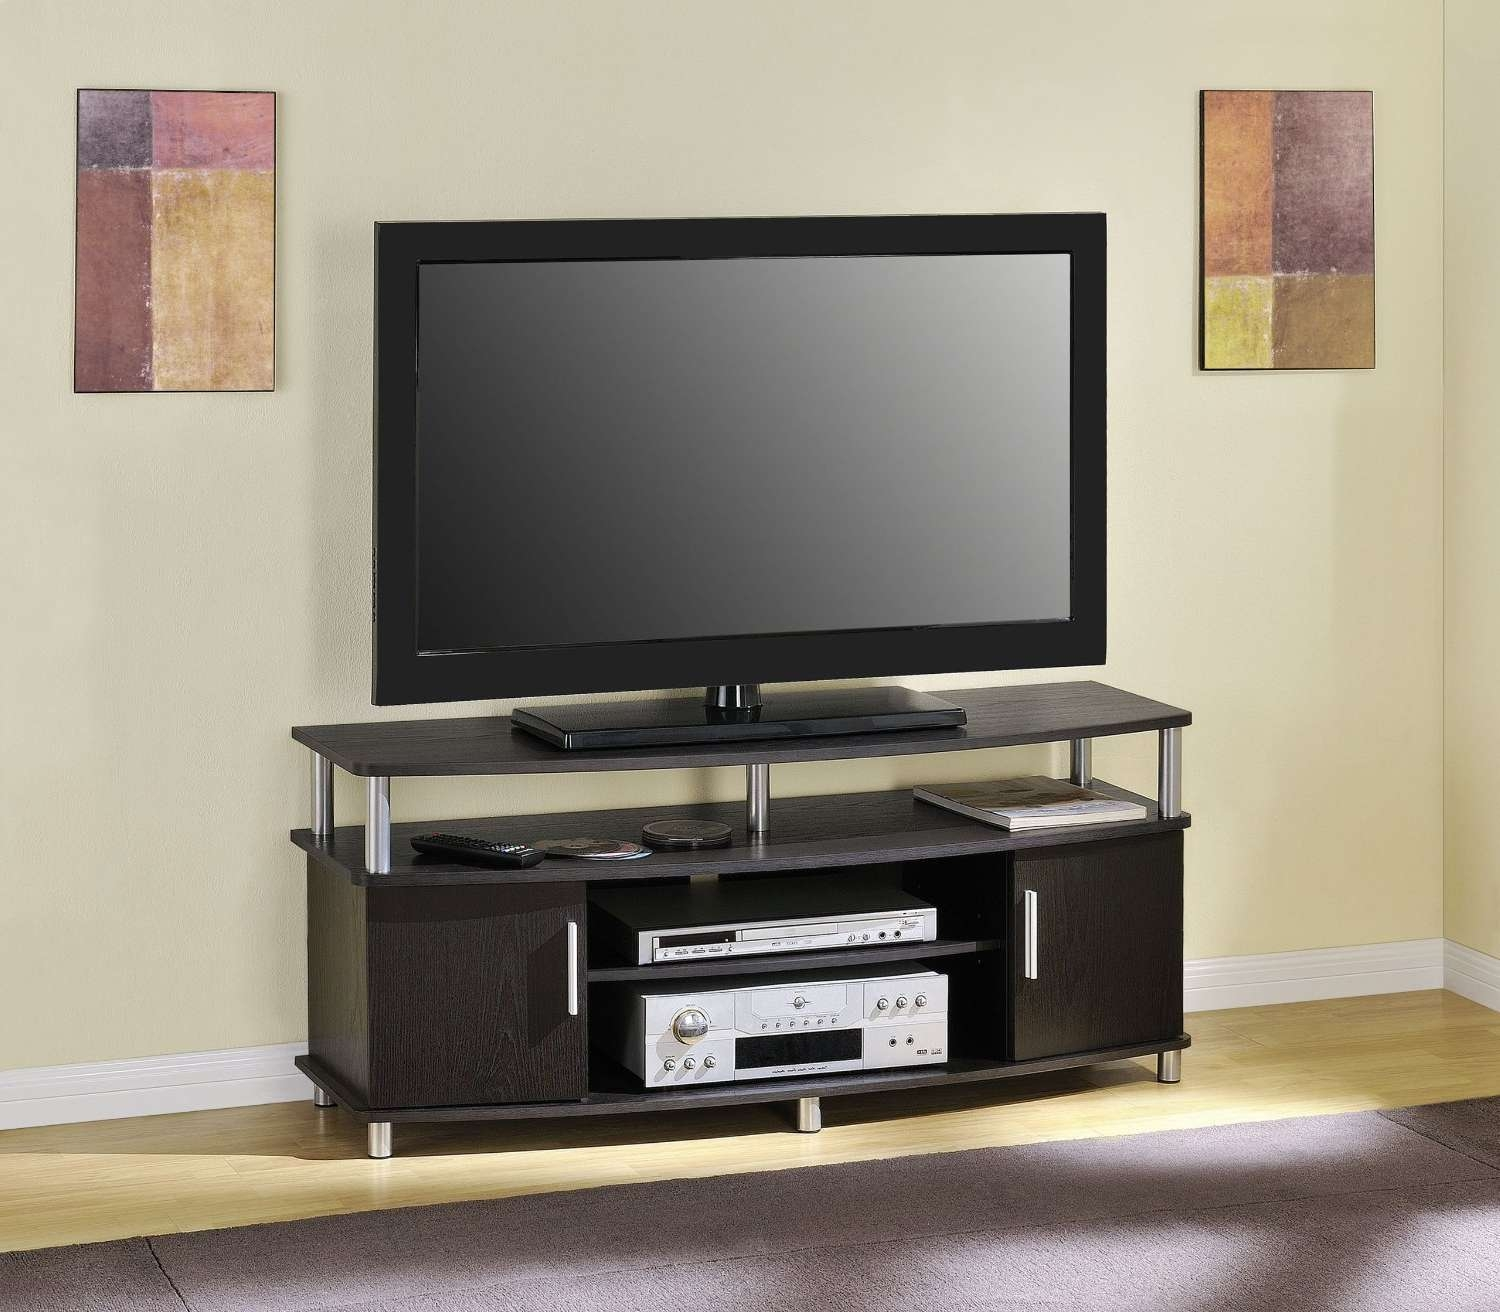 Black Lacquered Oak Wood Media Cabinet Decor With Chromed Metal Within Modern Tv Stands For Flat Screens (View 4 of 15)